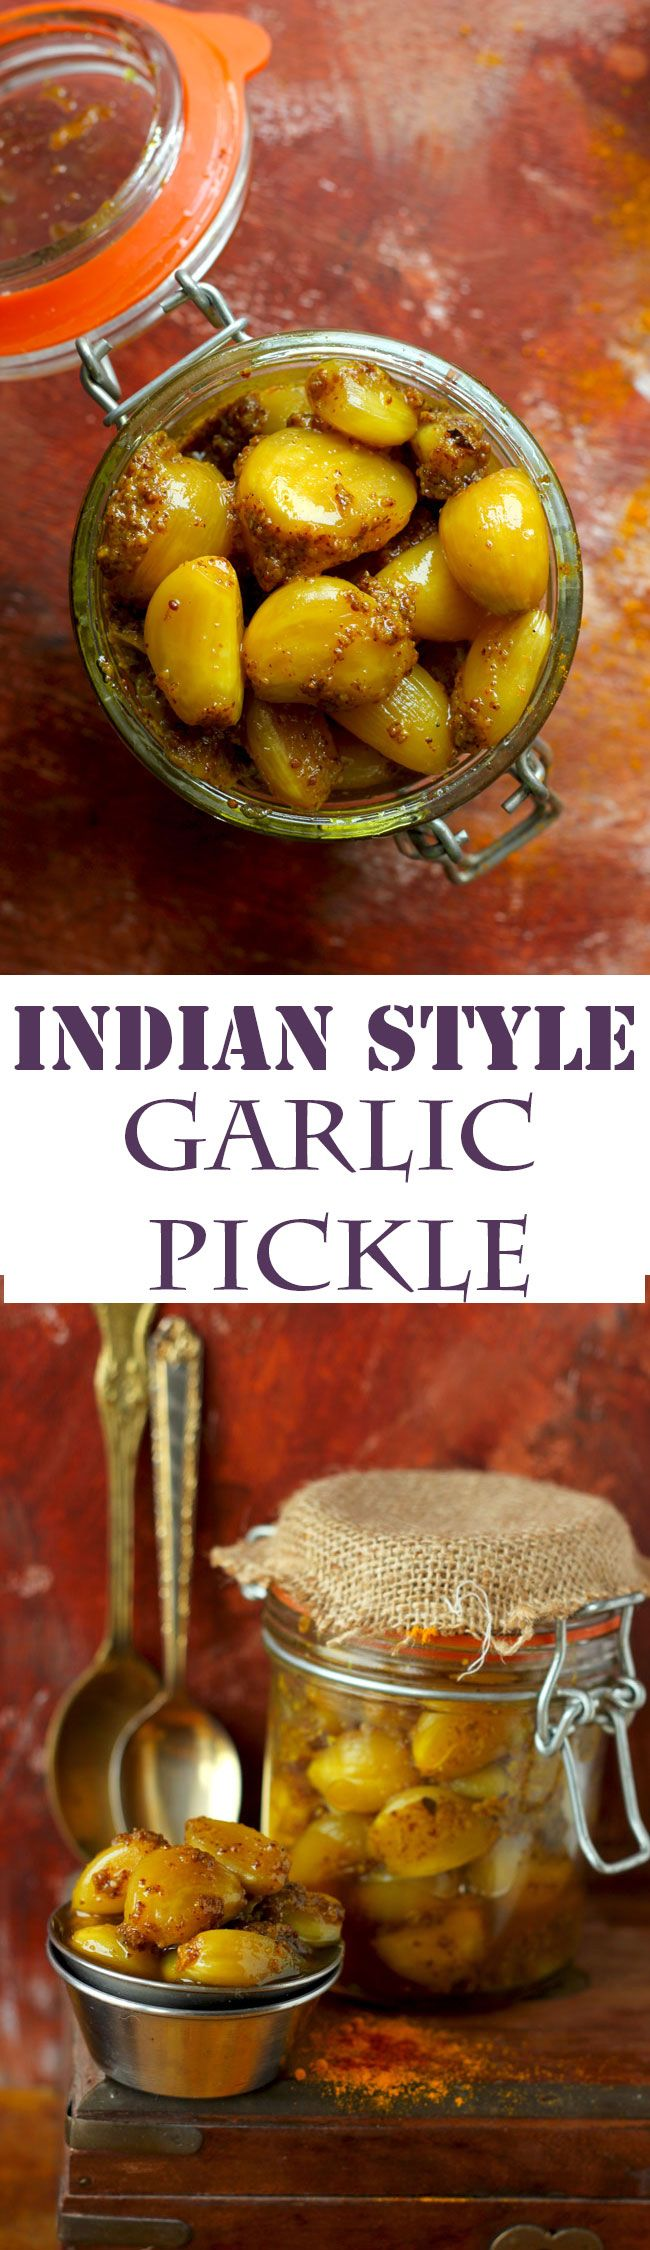 Have you ever thought of making a garlic pickle? It is one of those easy Indian recipes that are so uncomplicated to follow. funfoodfrolic.com #pickles #indianfood #garlic